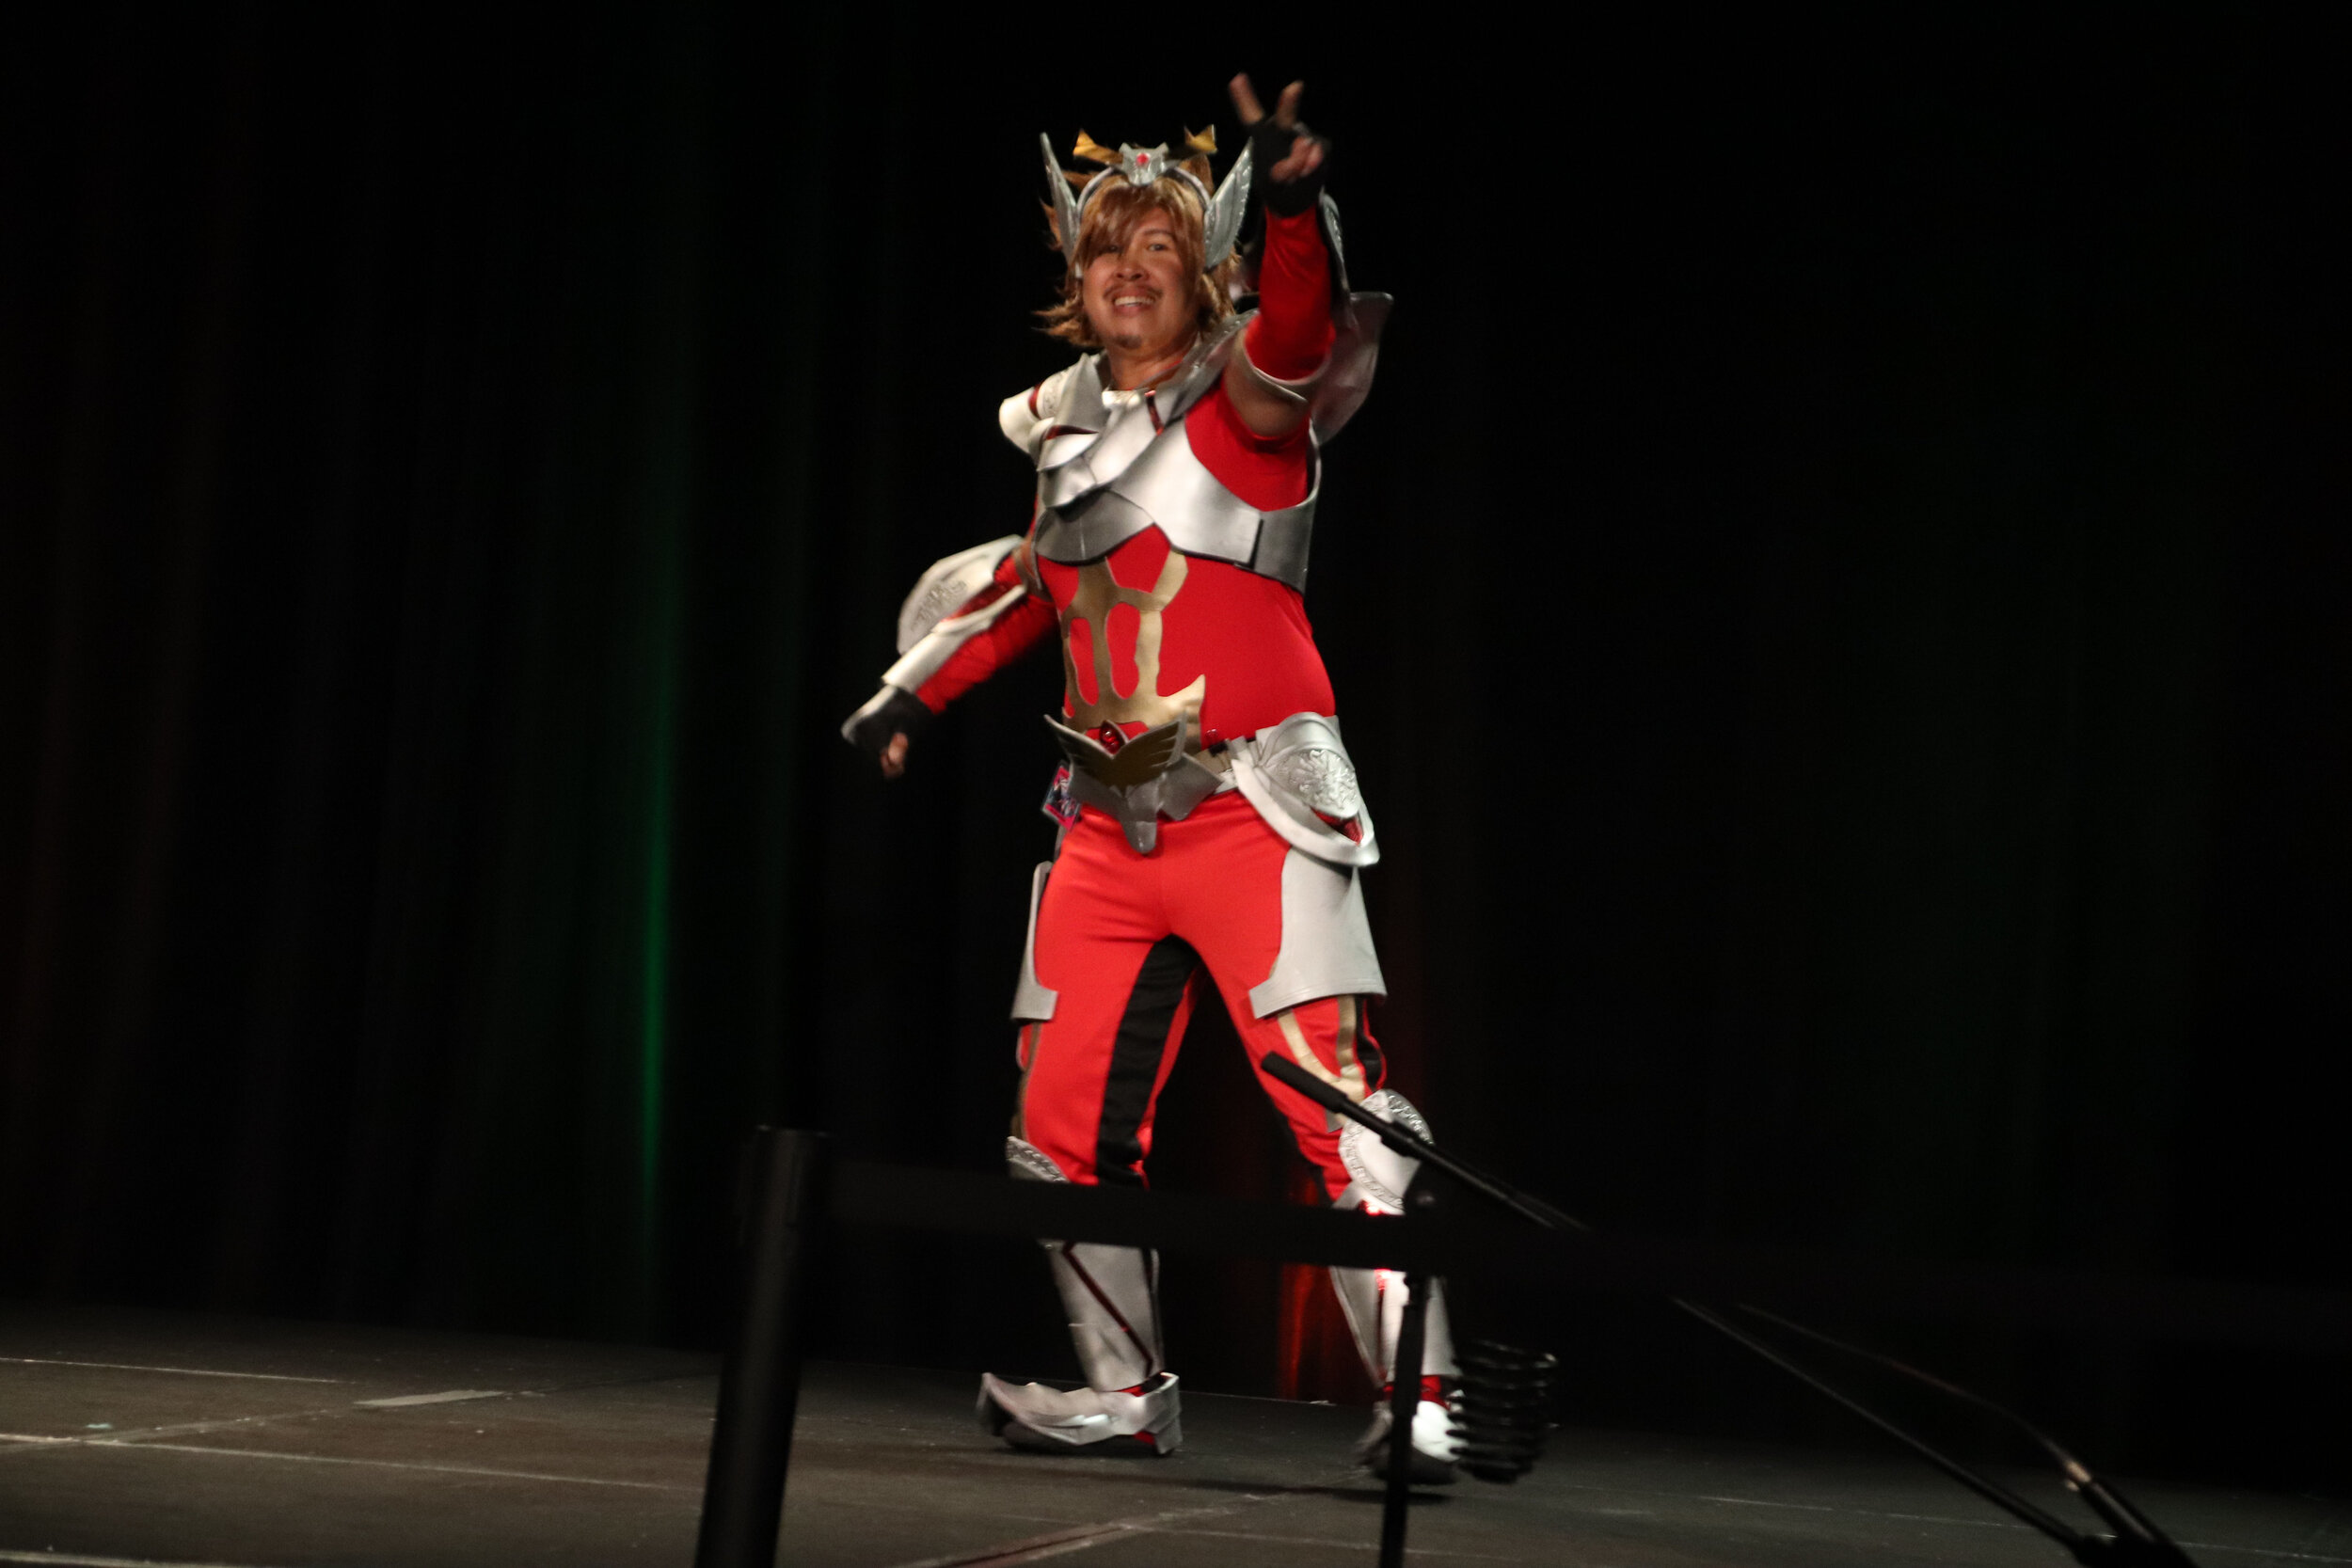 NDK Cosplay Contest 2019-58.jpg